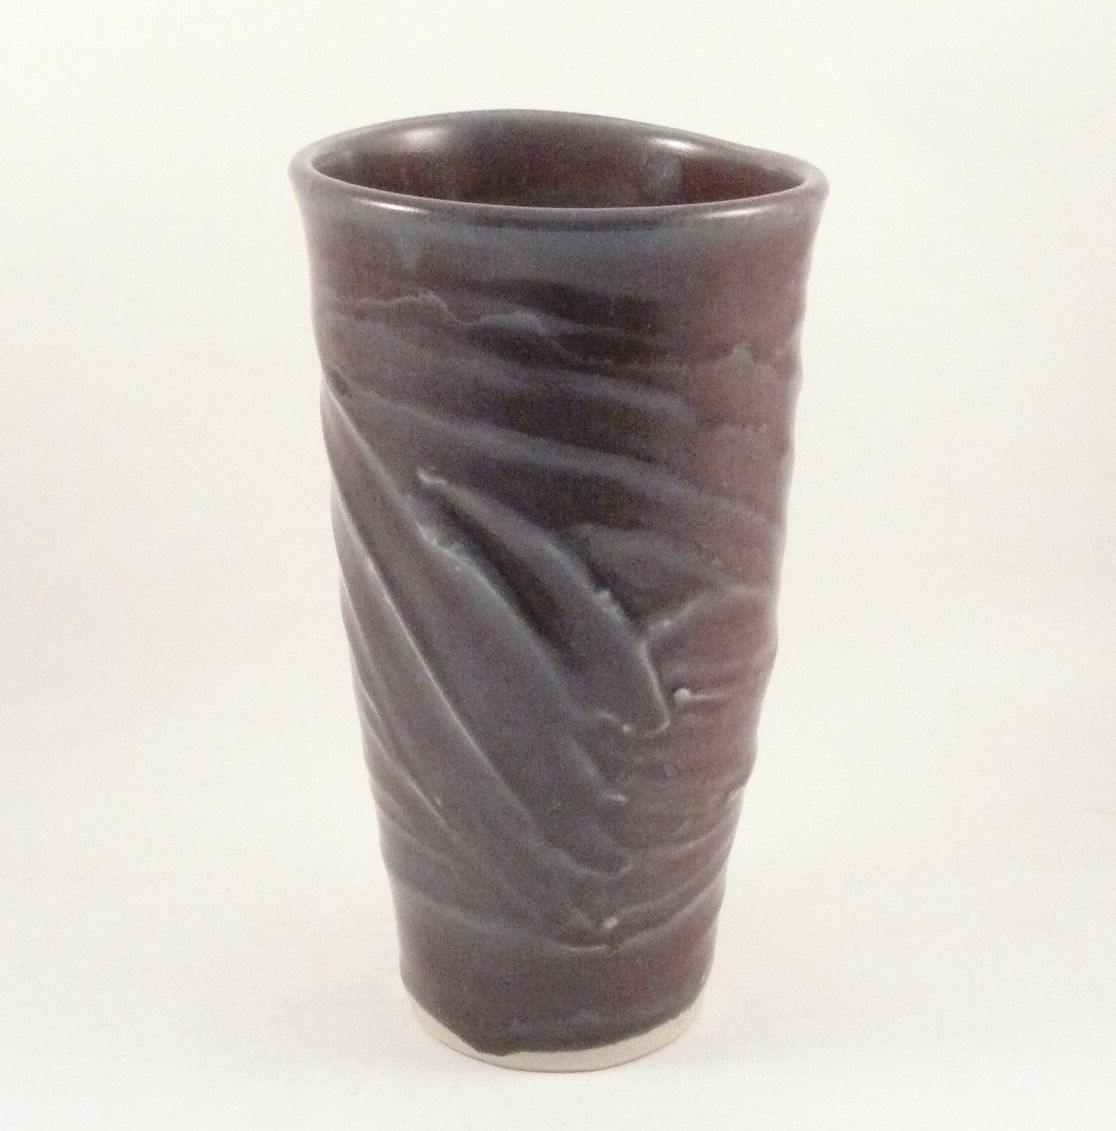 Hand crafted handmade ceramic art vase in eggplant purple tall hand crafted handmade ceramic art vase in eggplant purple tall sculpted vessel ships today by blue sky pottery custommade reviewsmspy